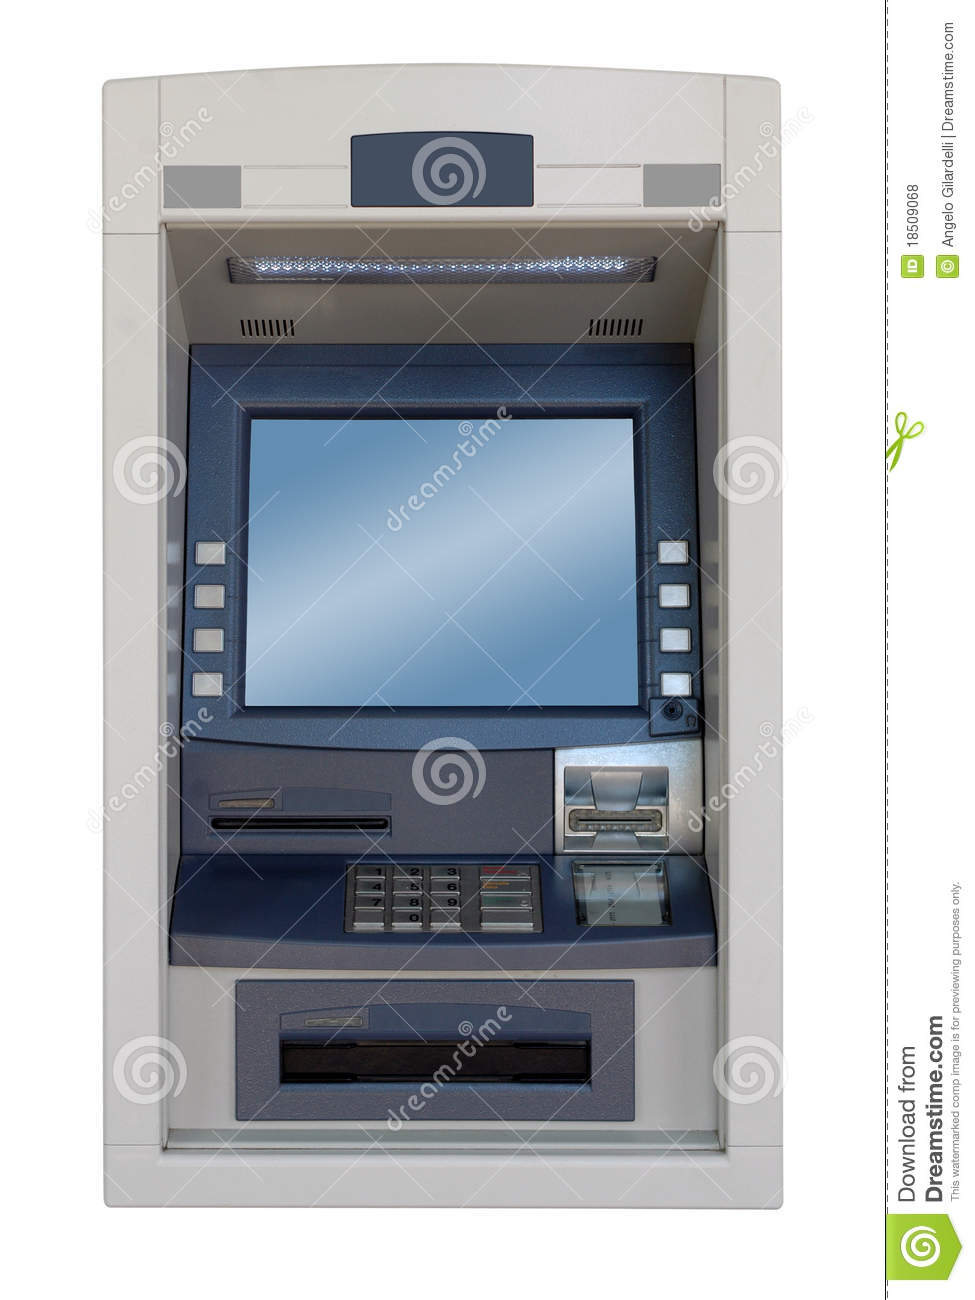 Atm Machine   Front View Royalty Free Stock Photos   Image  18509068